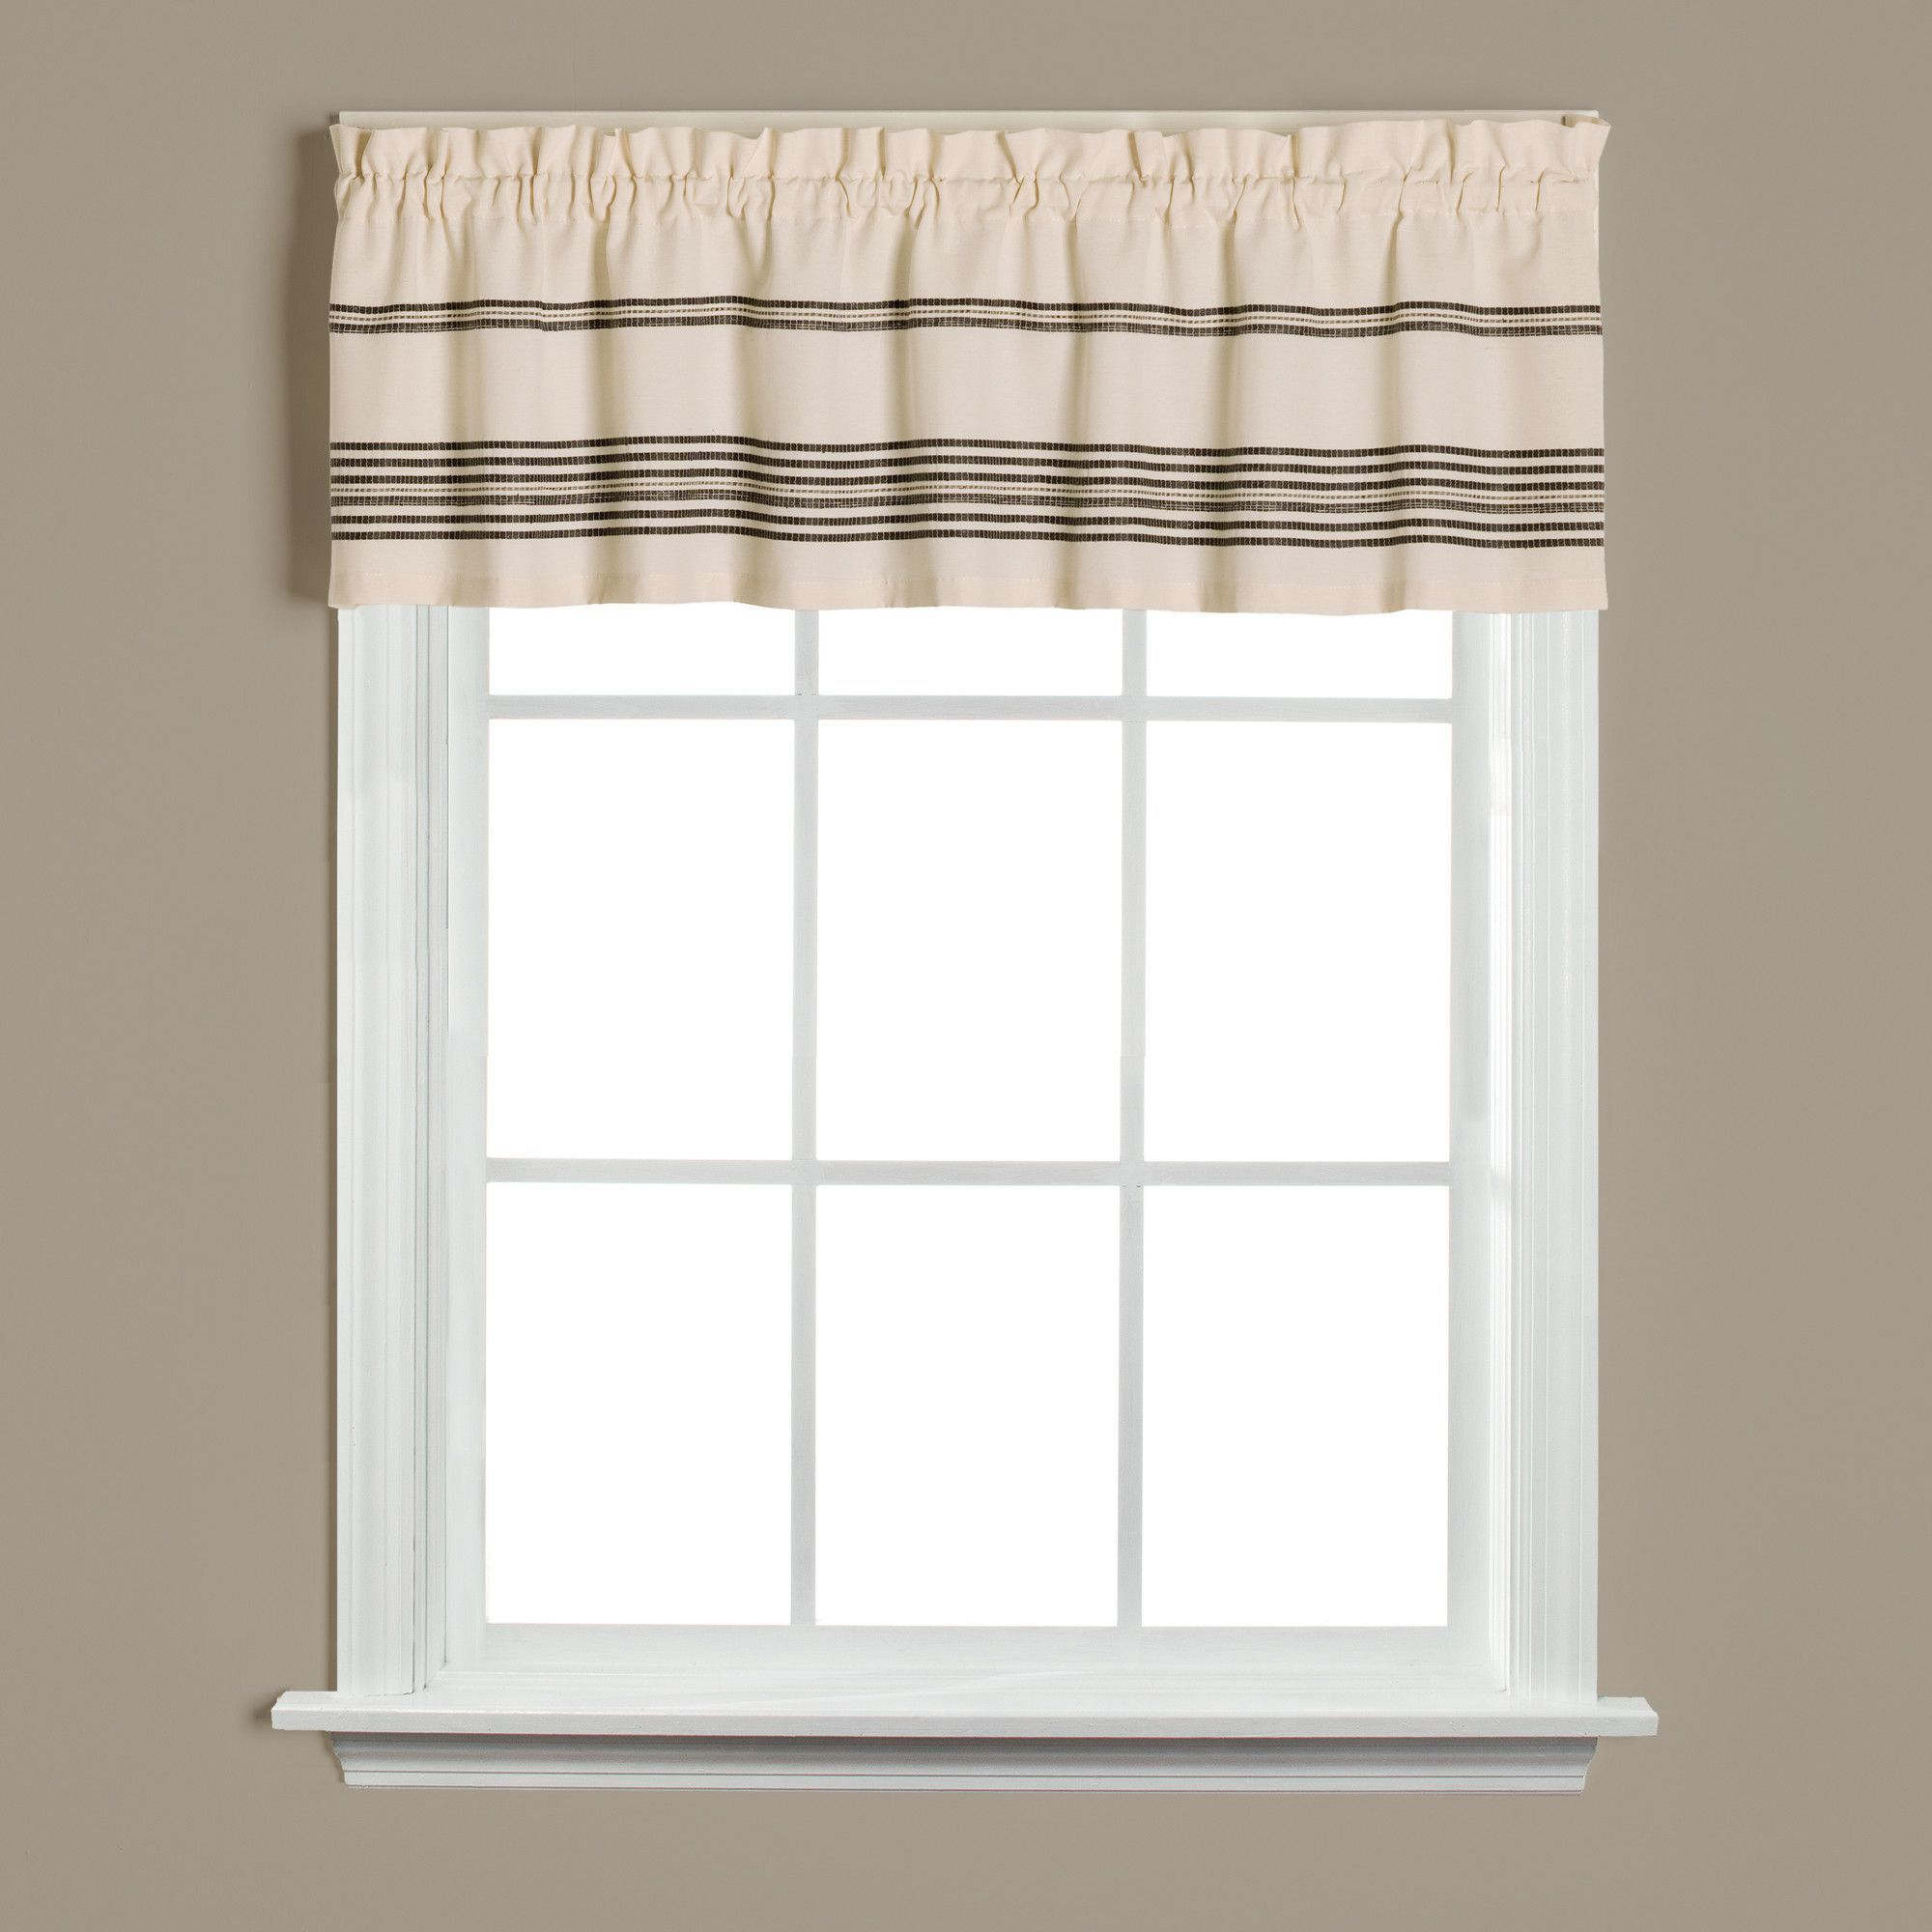 Cheap window coverings  sundance curtain valance  products  pinterest  curtain valances